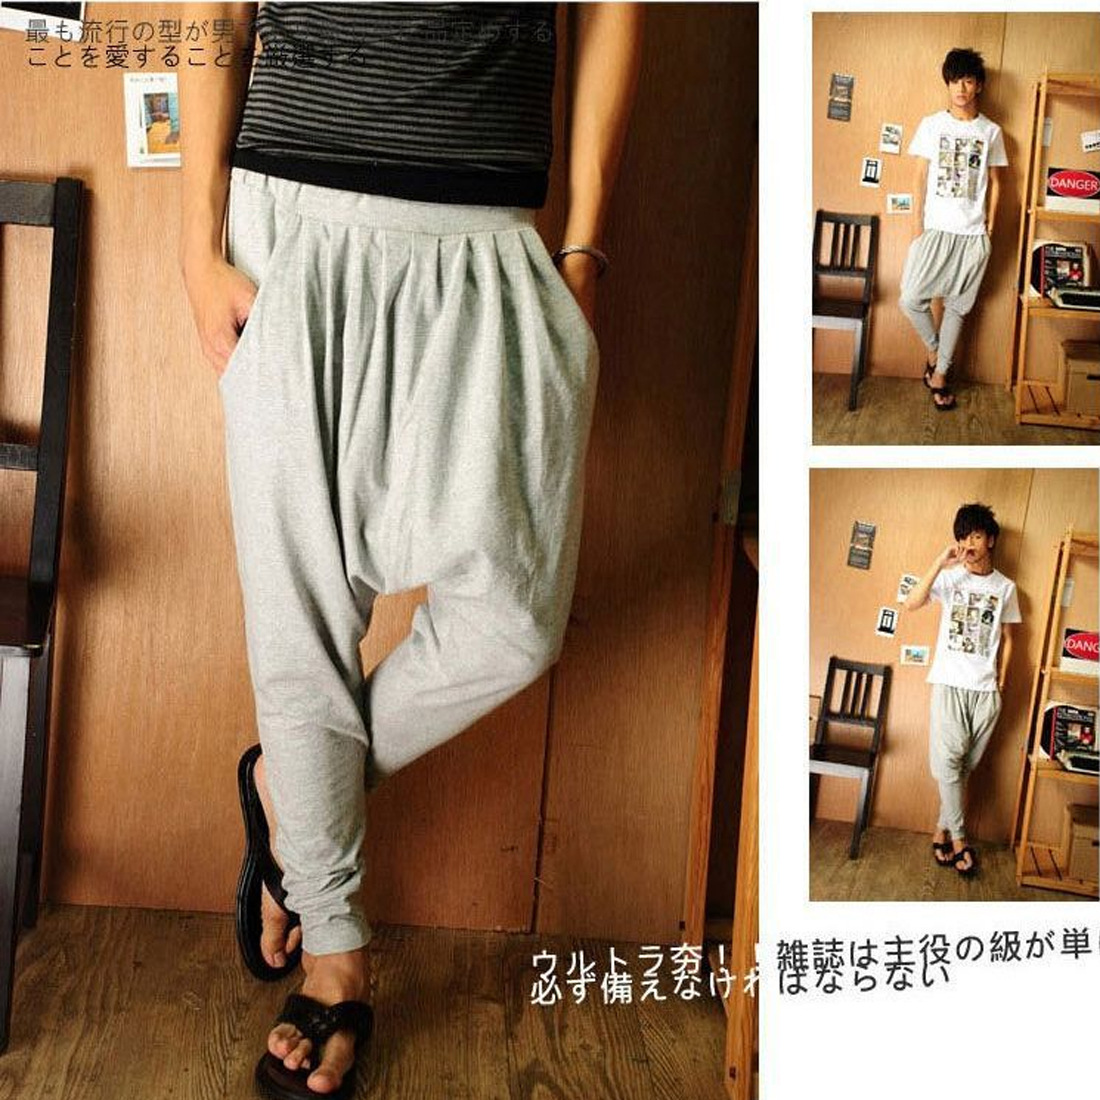 Purchasing Agents AliExpress Men Harem Pants Japanese Korean For Both Men And Women Saggy Pants Harem Pants K008